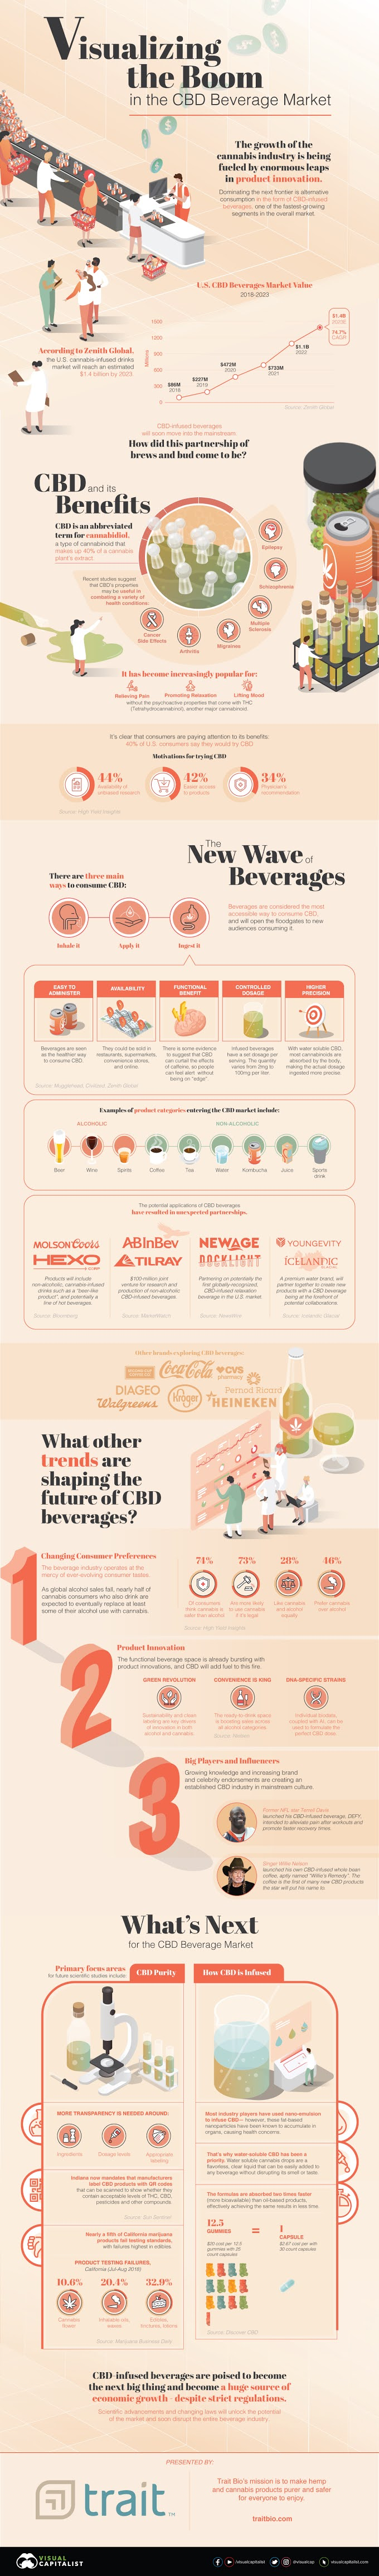 Visualizing the Boom in the CBD Beverage Market #infographic #Markets #CBD Beverage Market #CBD